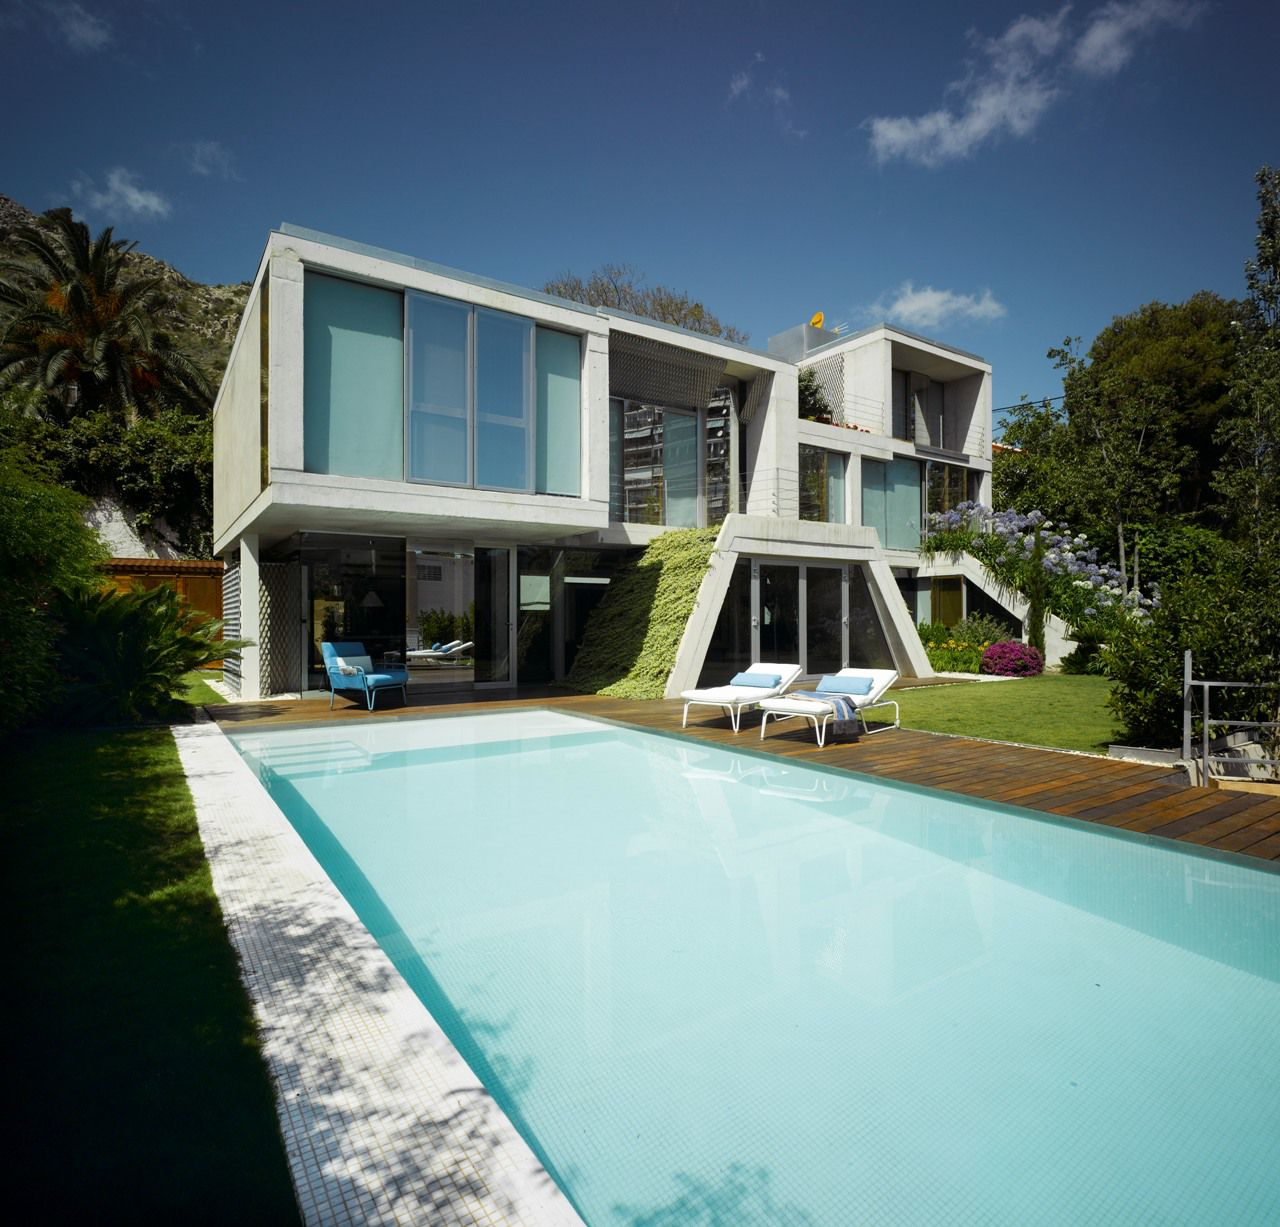 The Garden House in Alicante Spain by Joaquín Alvado Bañón